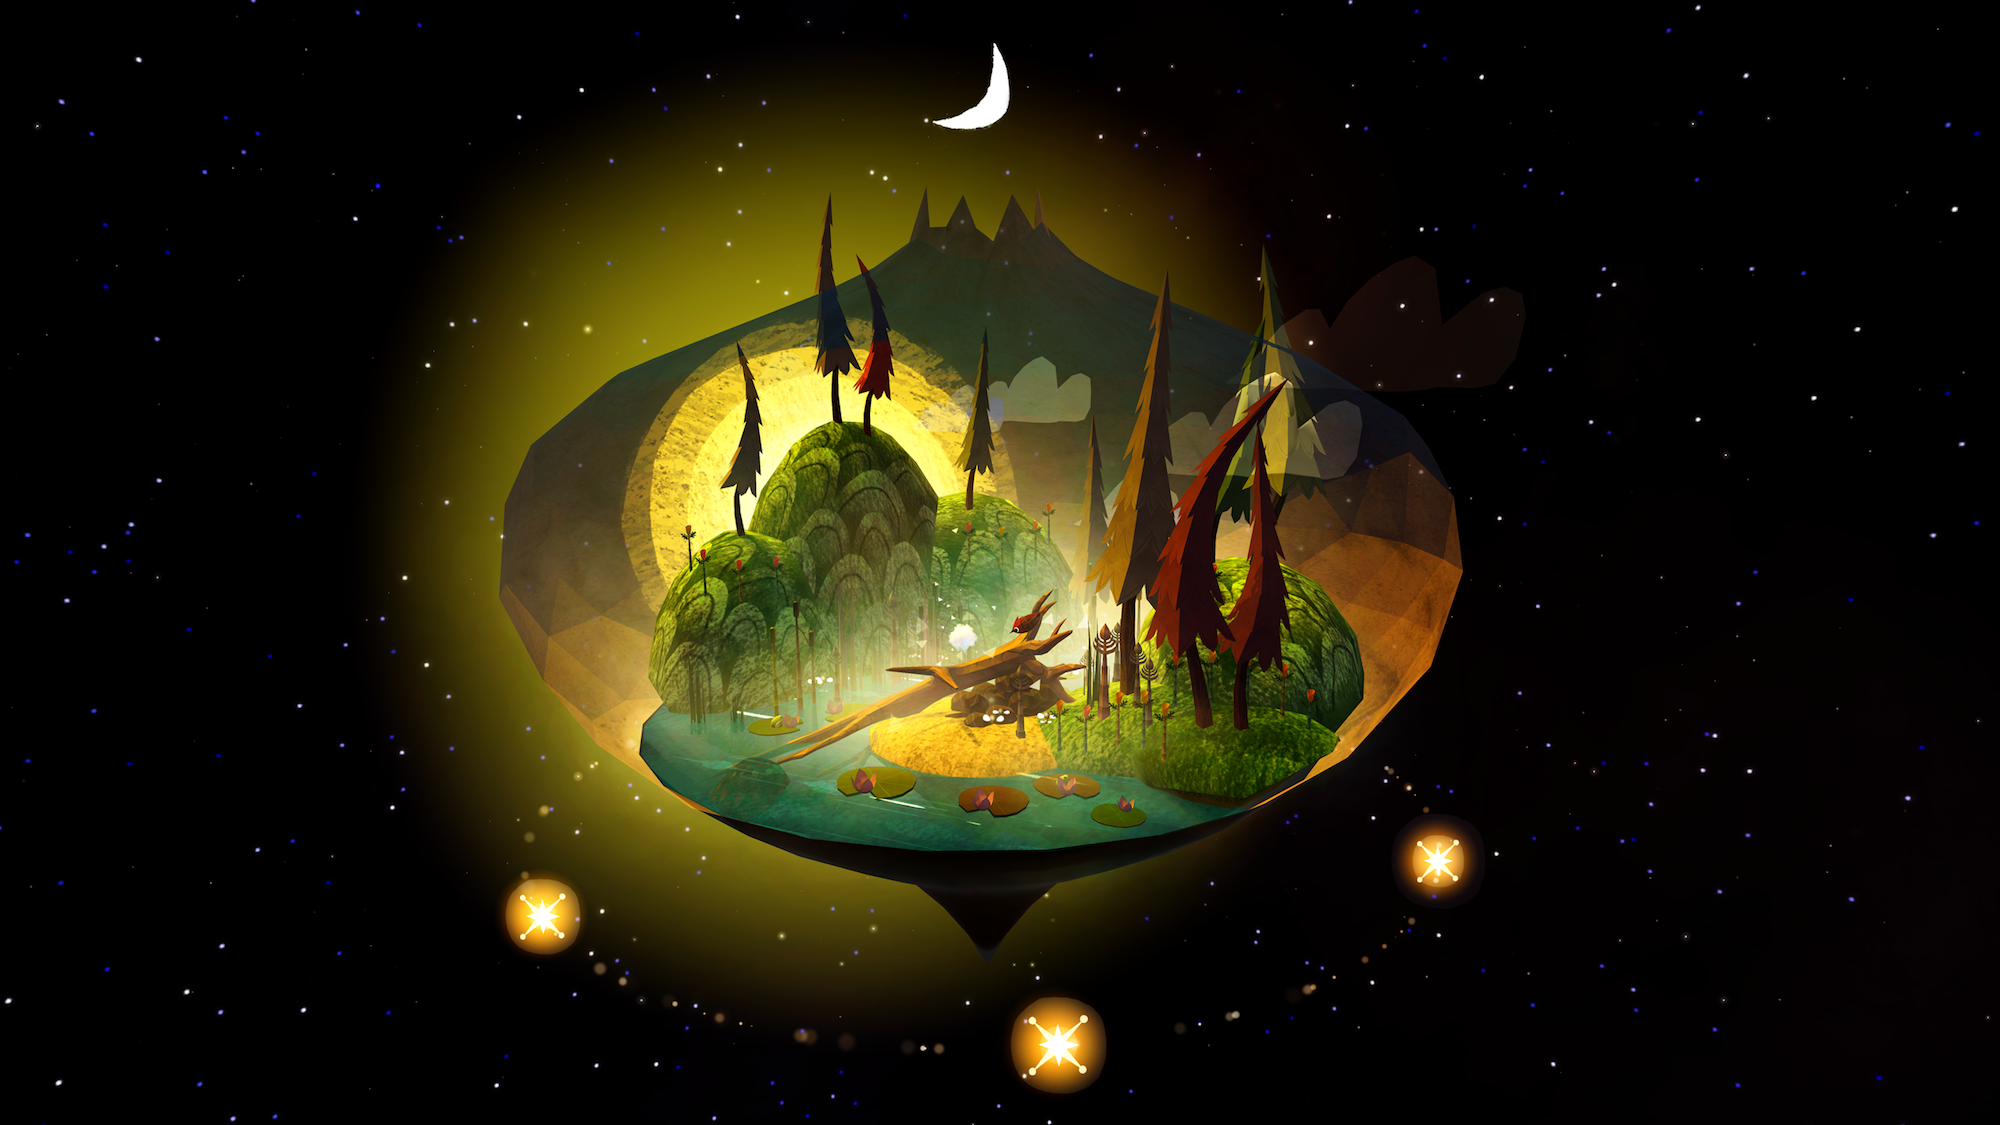 'Luna' is a whimsical puzzle game that takes place in the ...